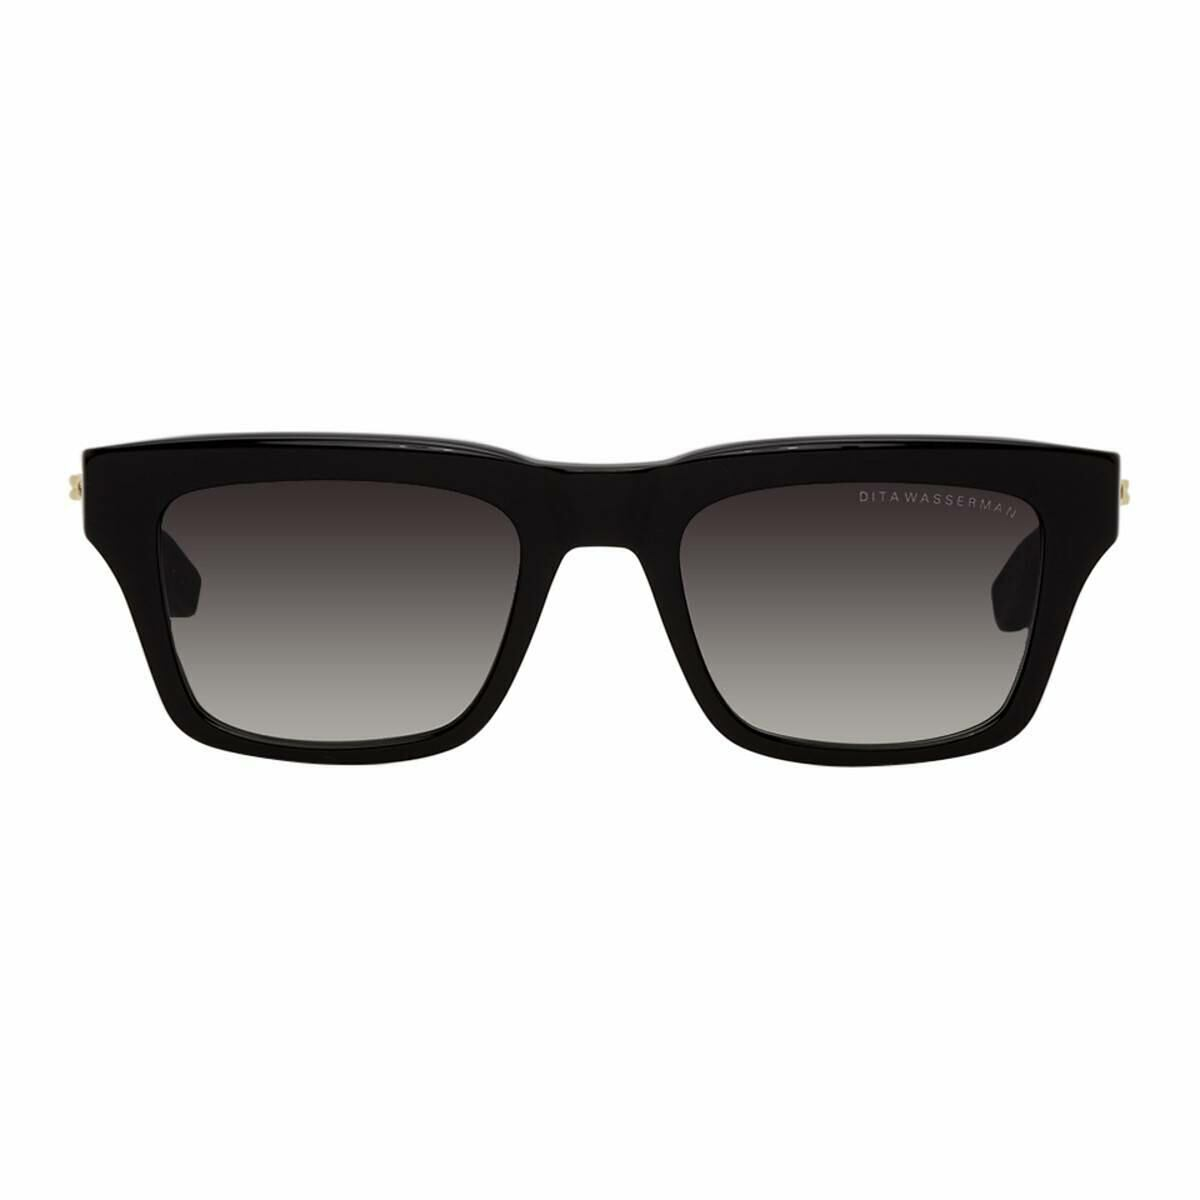 Dita Black and Grey Wasserman Sunglasses Ssense USA MEN Men ACCESSORIES Mens SUNGLASSES